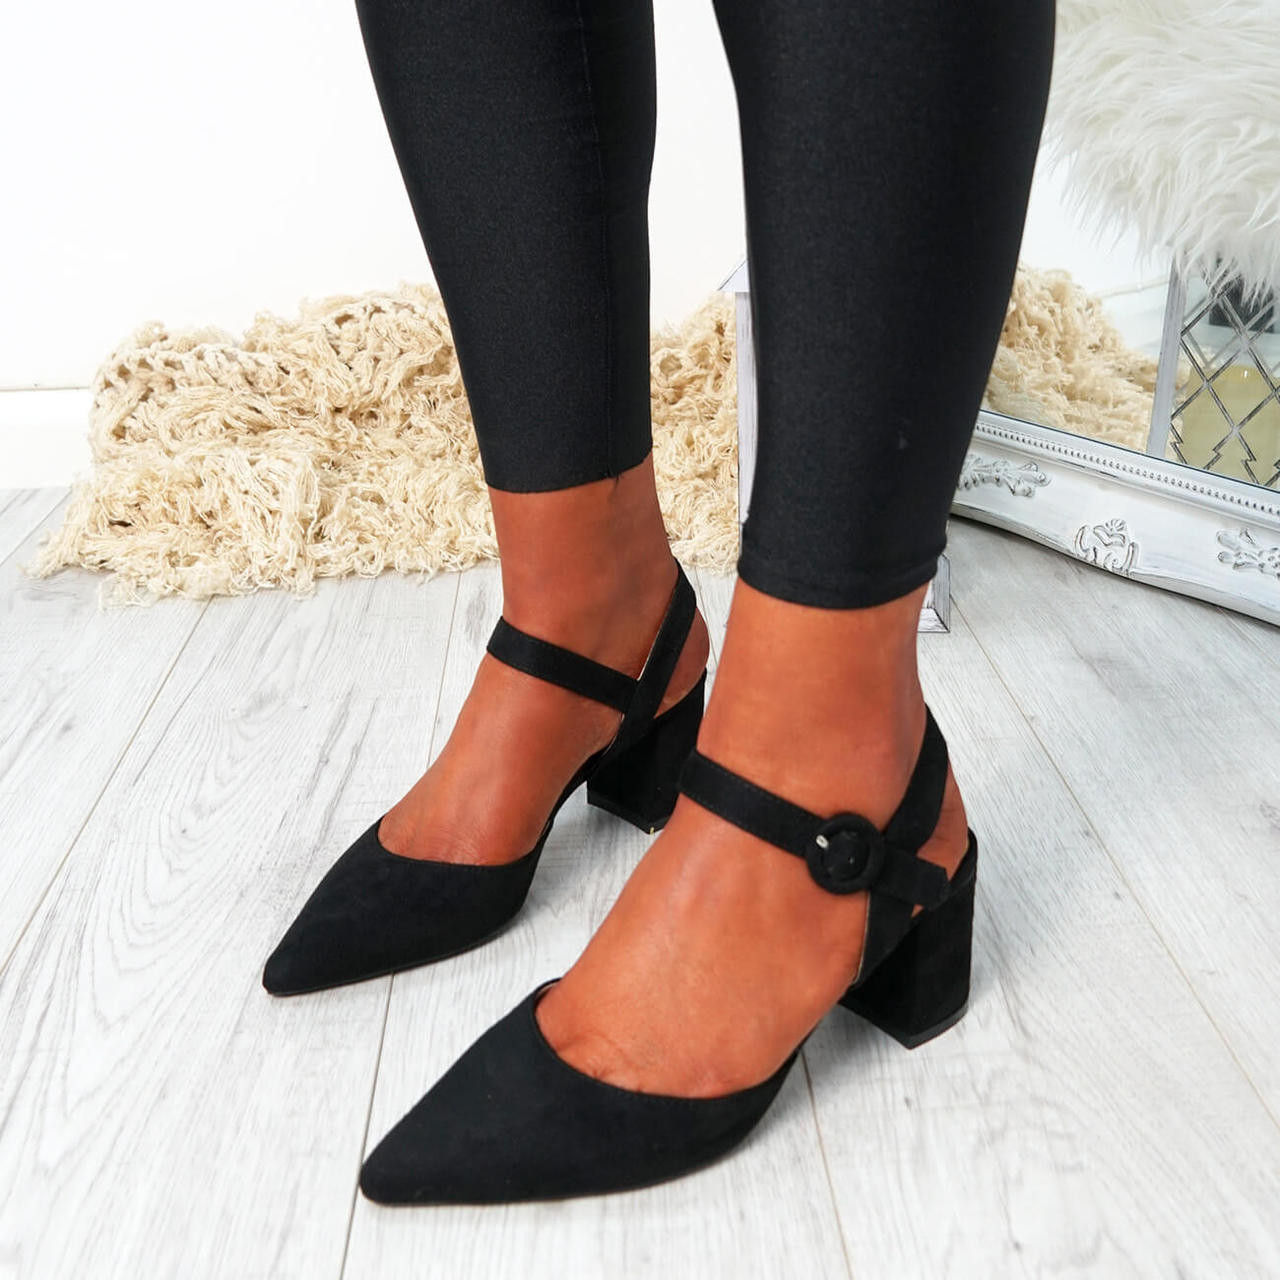 ea3f089d6c68 Womens Ladies Mid High Block Heel Pointed Pumps Ankle Strap Buckle Shoes  Size